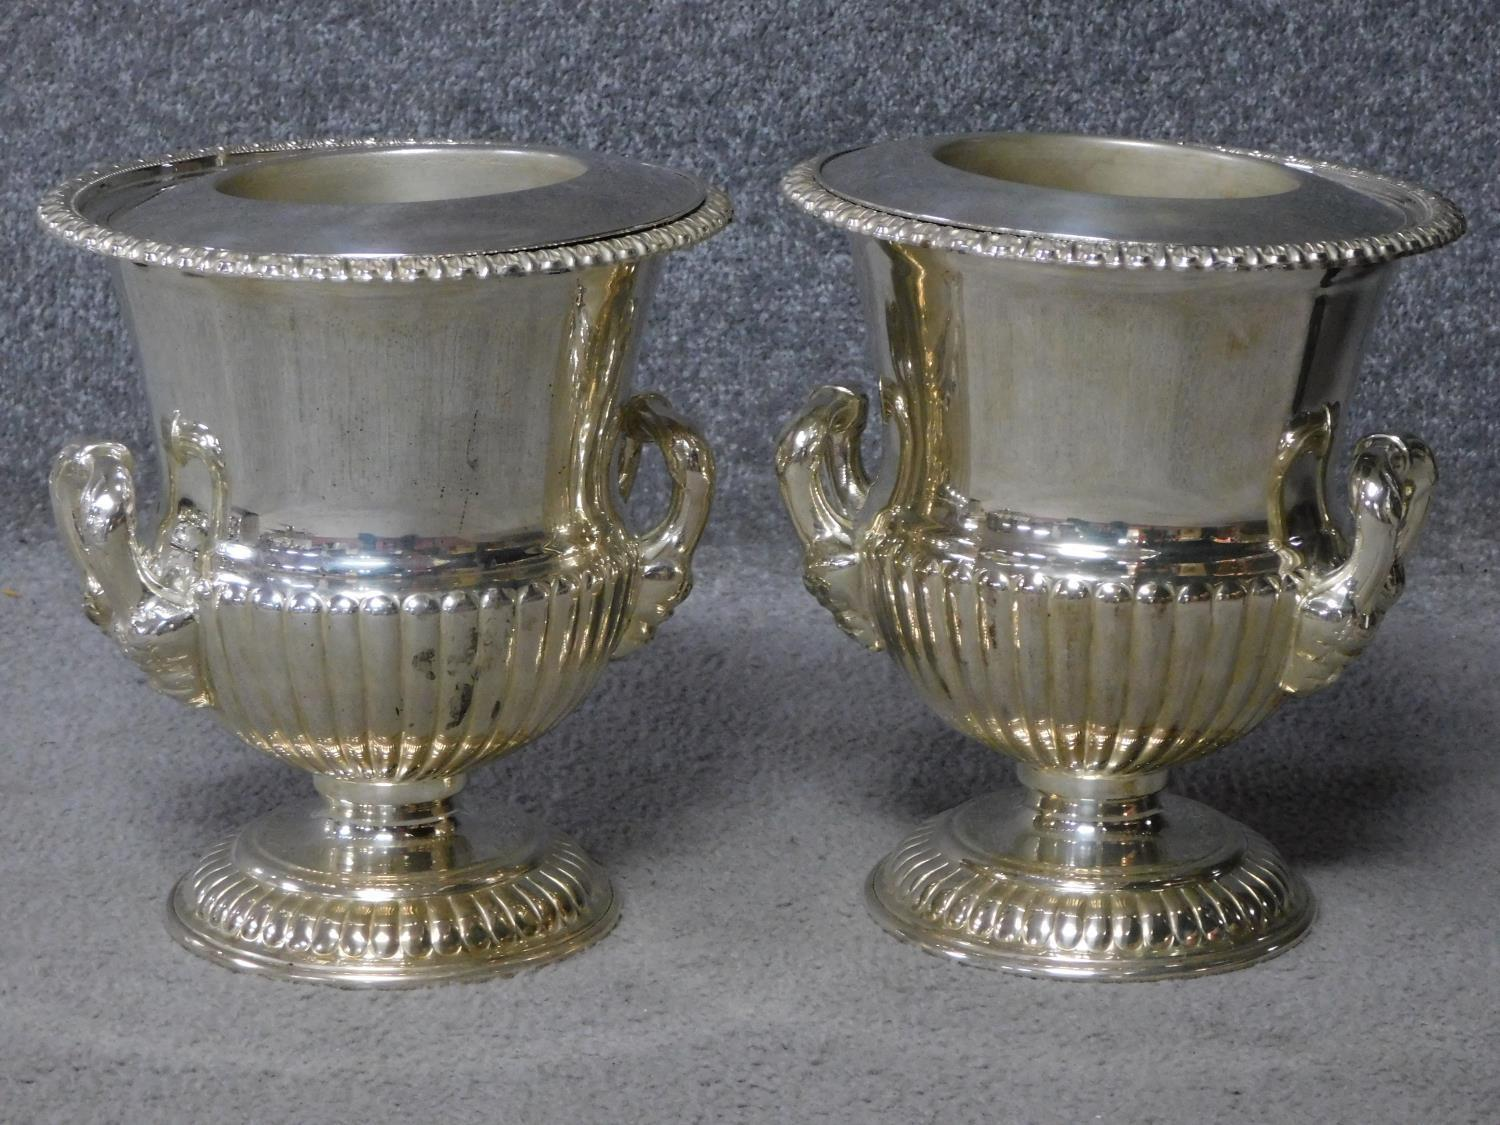 A pair of antique Old Regency Sheffield silver plated wine coolers by Henry Wilkinson and Co. with